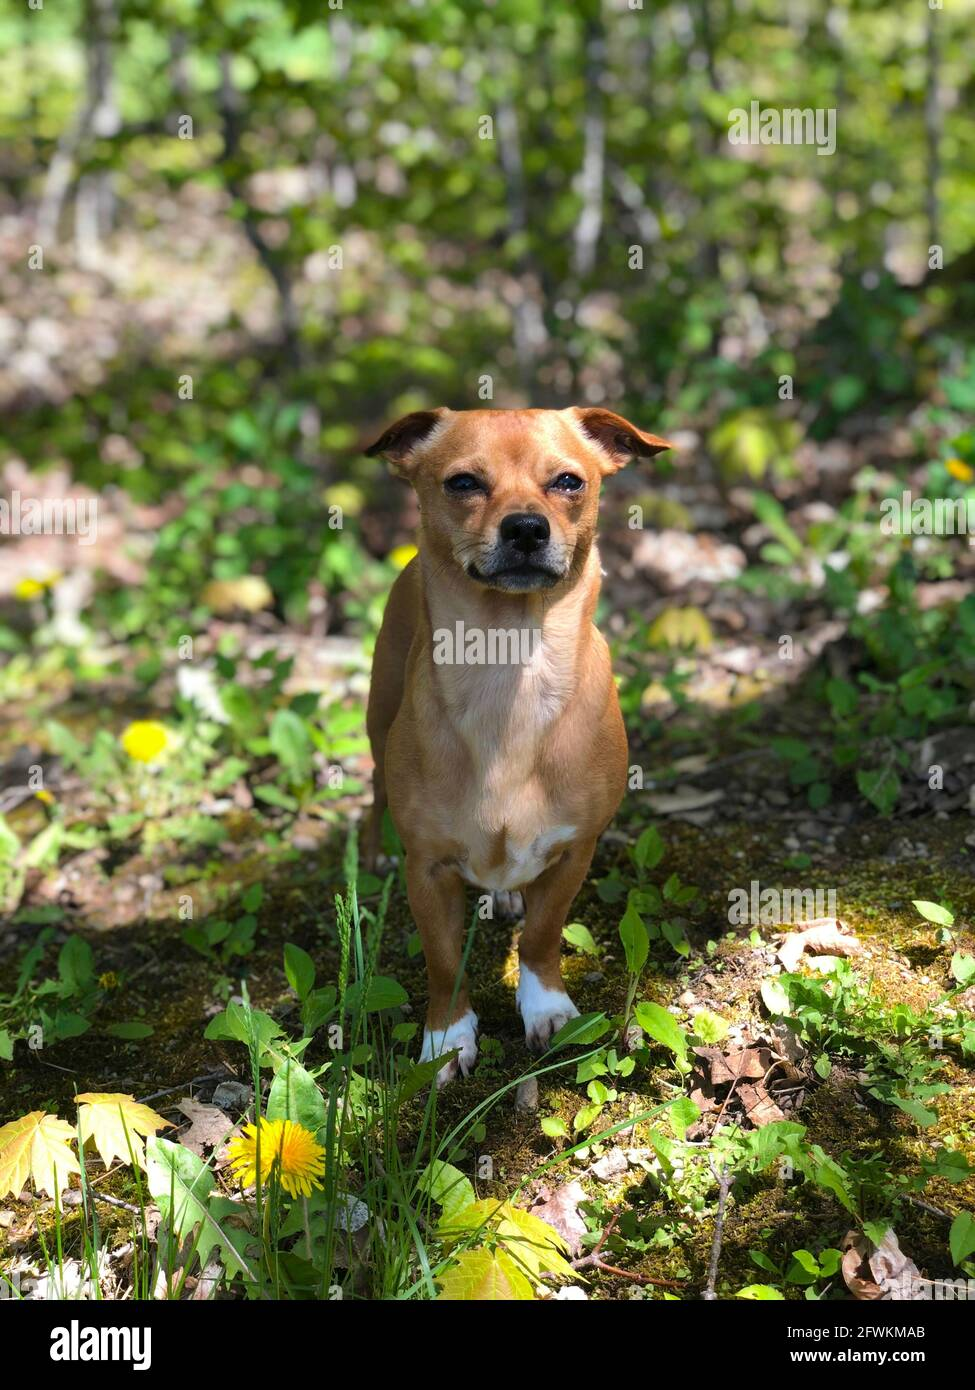 Chiweenie, a chihuahua and dachshund mix  dog outdoors amongst the grass and dandelions during spring Stock Photo